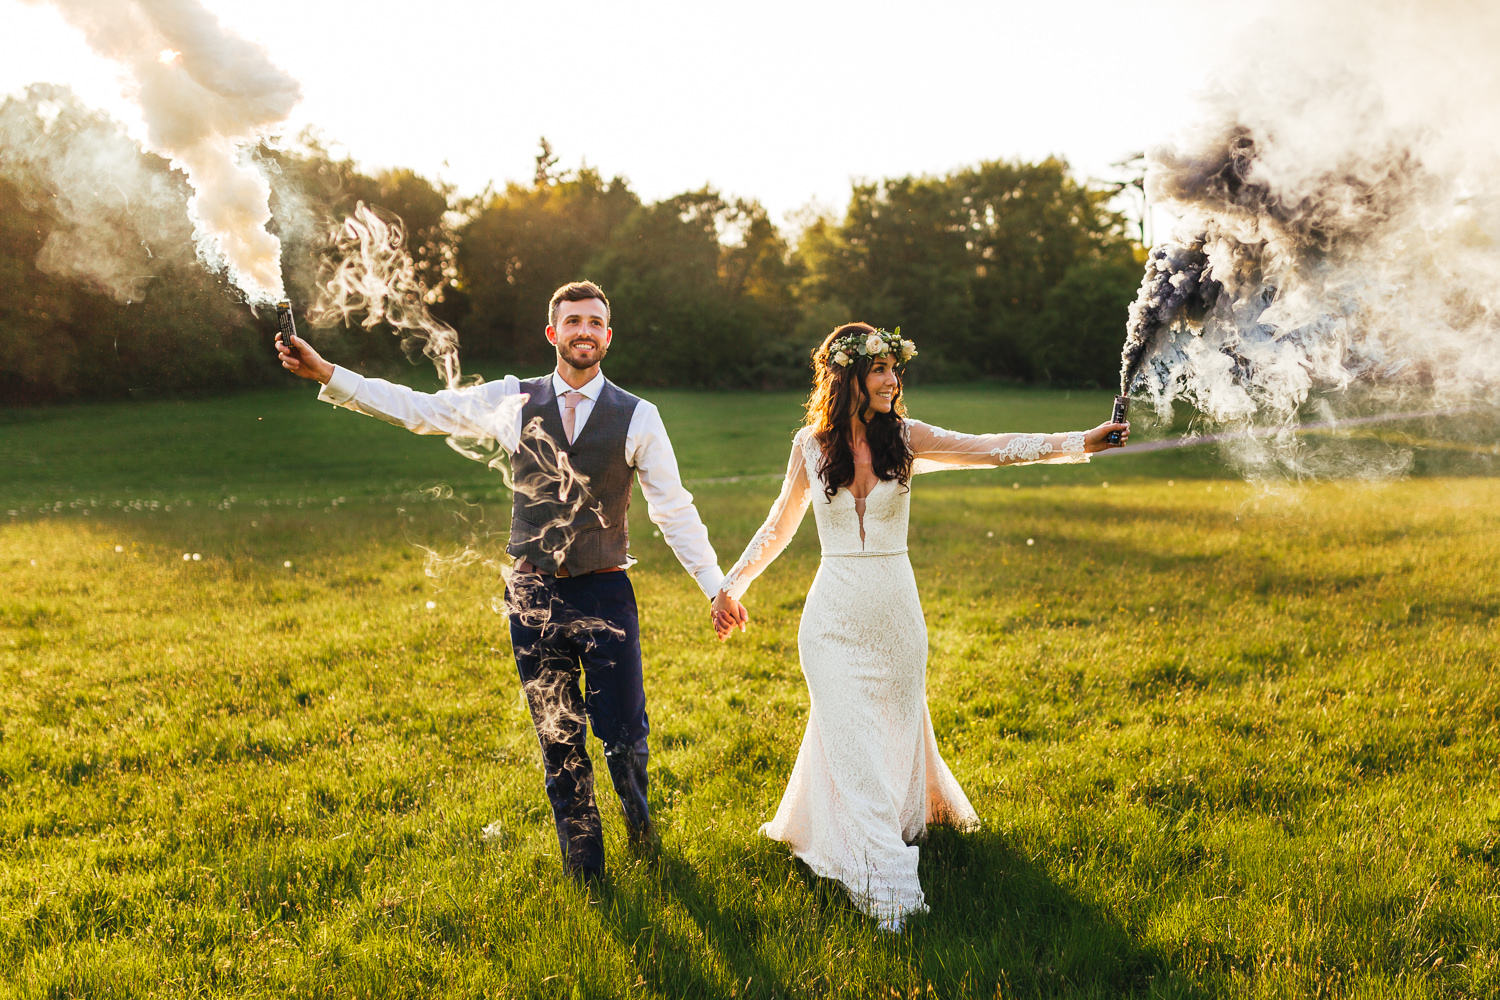 colourful hampshire wedding photographer Bride and groom with smoke grenades during Quirky Alternative Festival Wedding Photography at Painshill Park